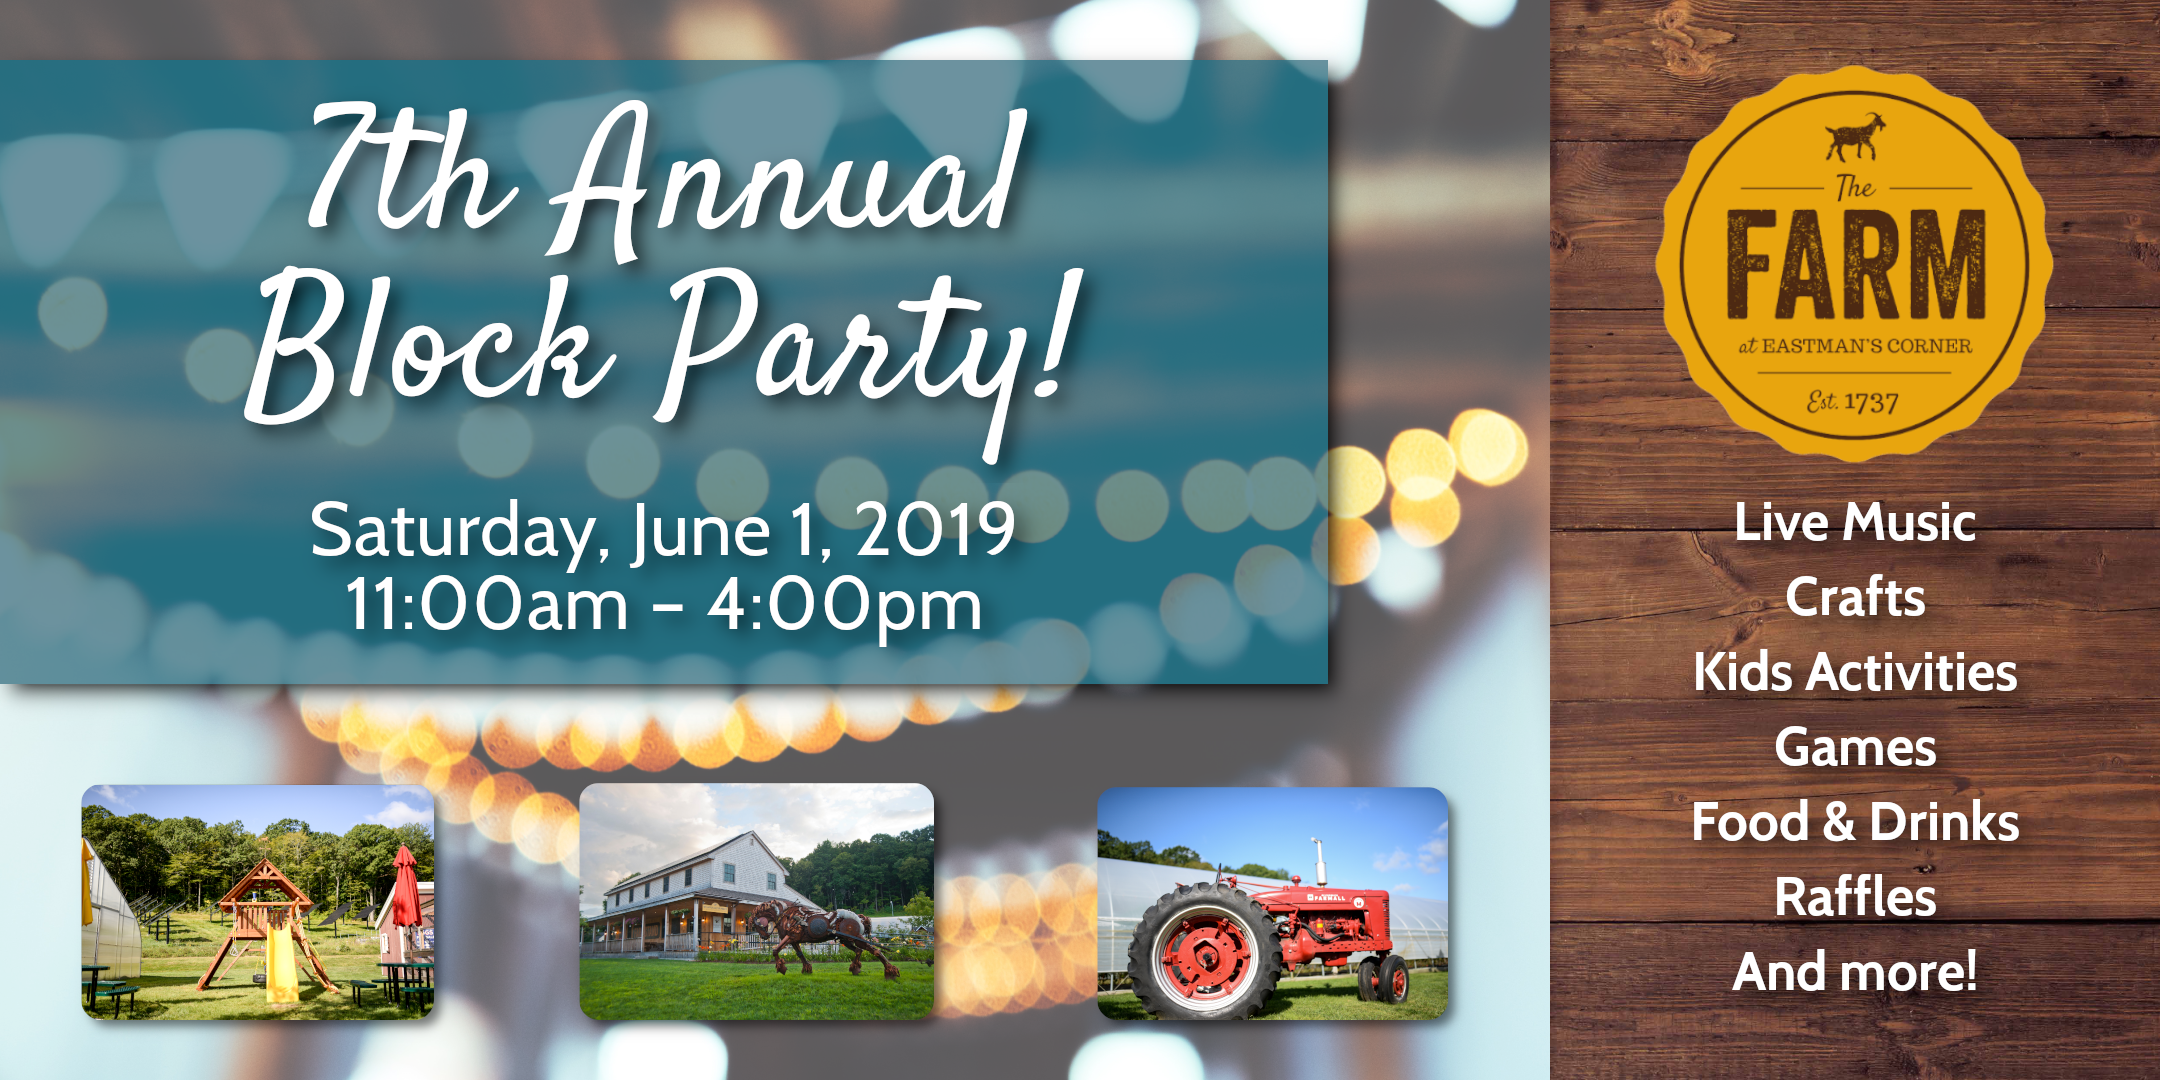 The Farm's 7th Annual Block Party